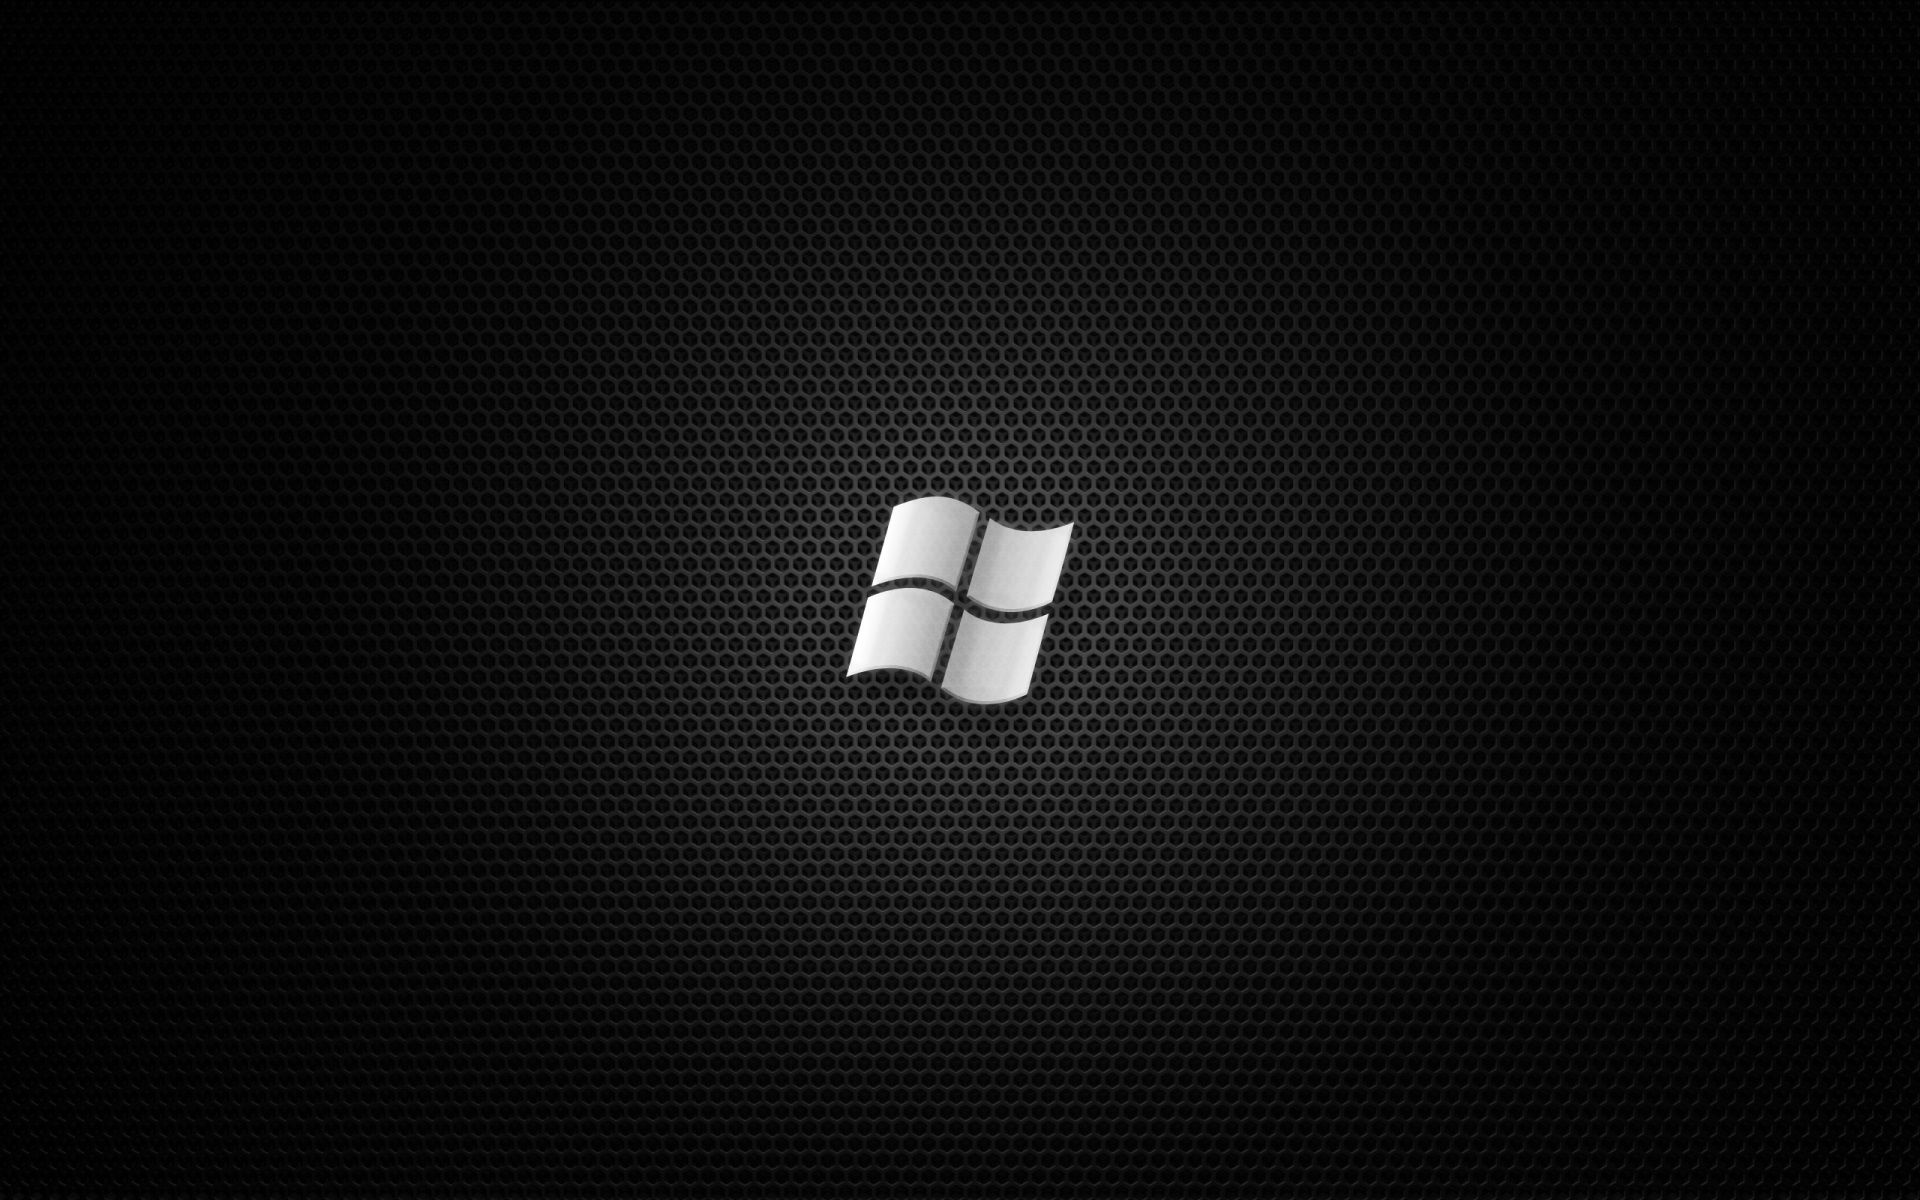 1920x1200 Windows Hd Wallpaper For Macbook Pro Black Desktop Wallpaper Pc Pc Desktop Wallpaper